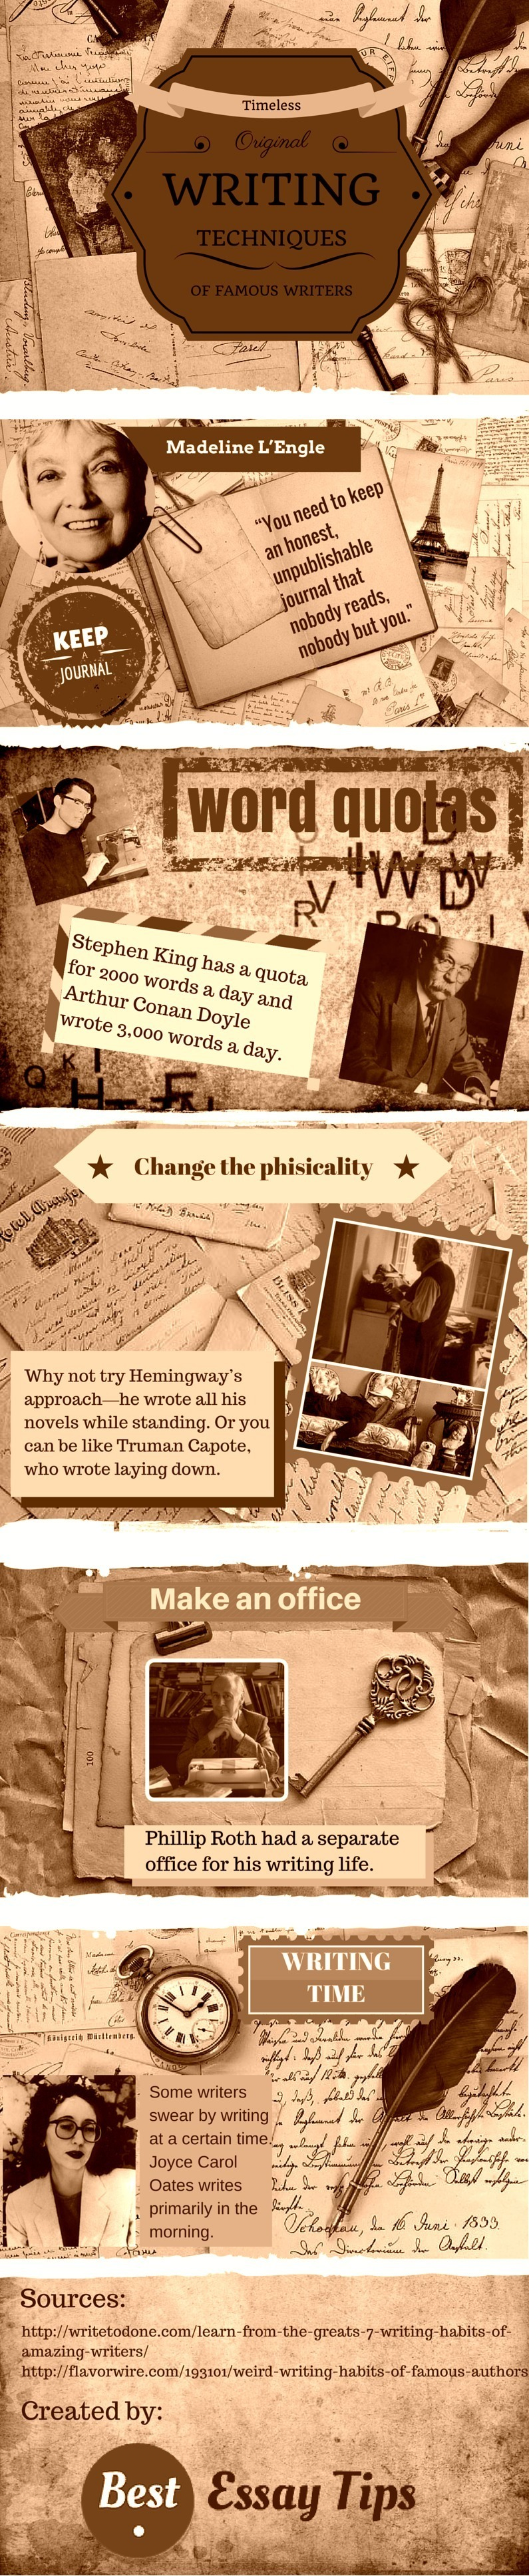 Different Writing Techniques of Famous Writers Infographic